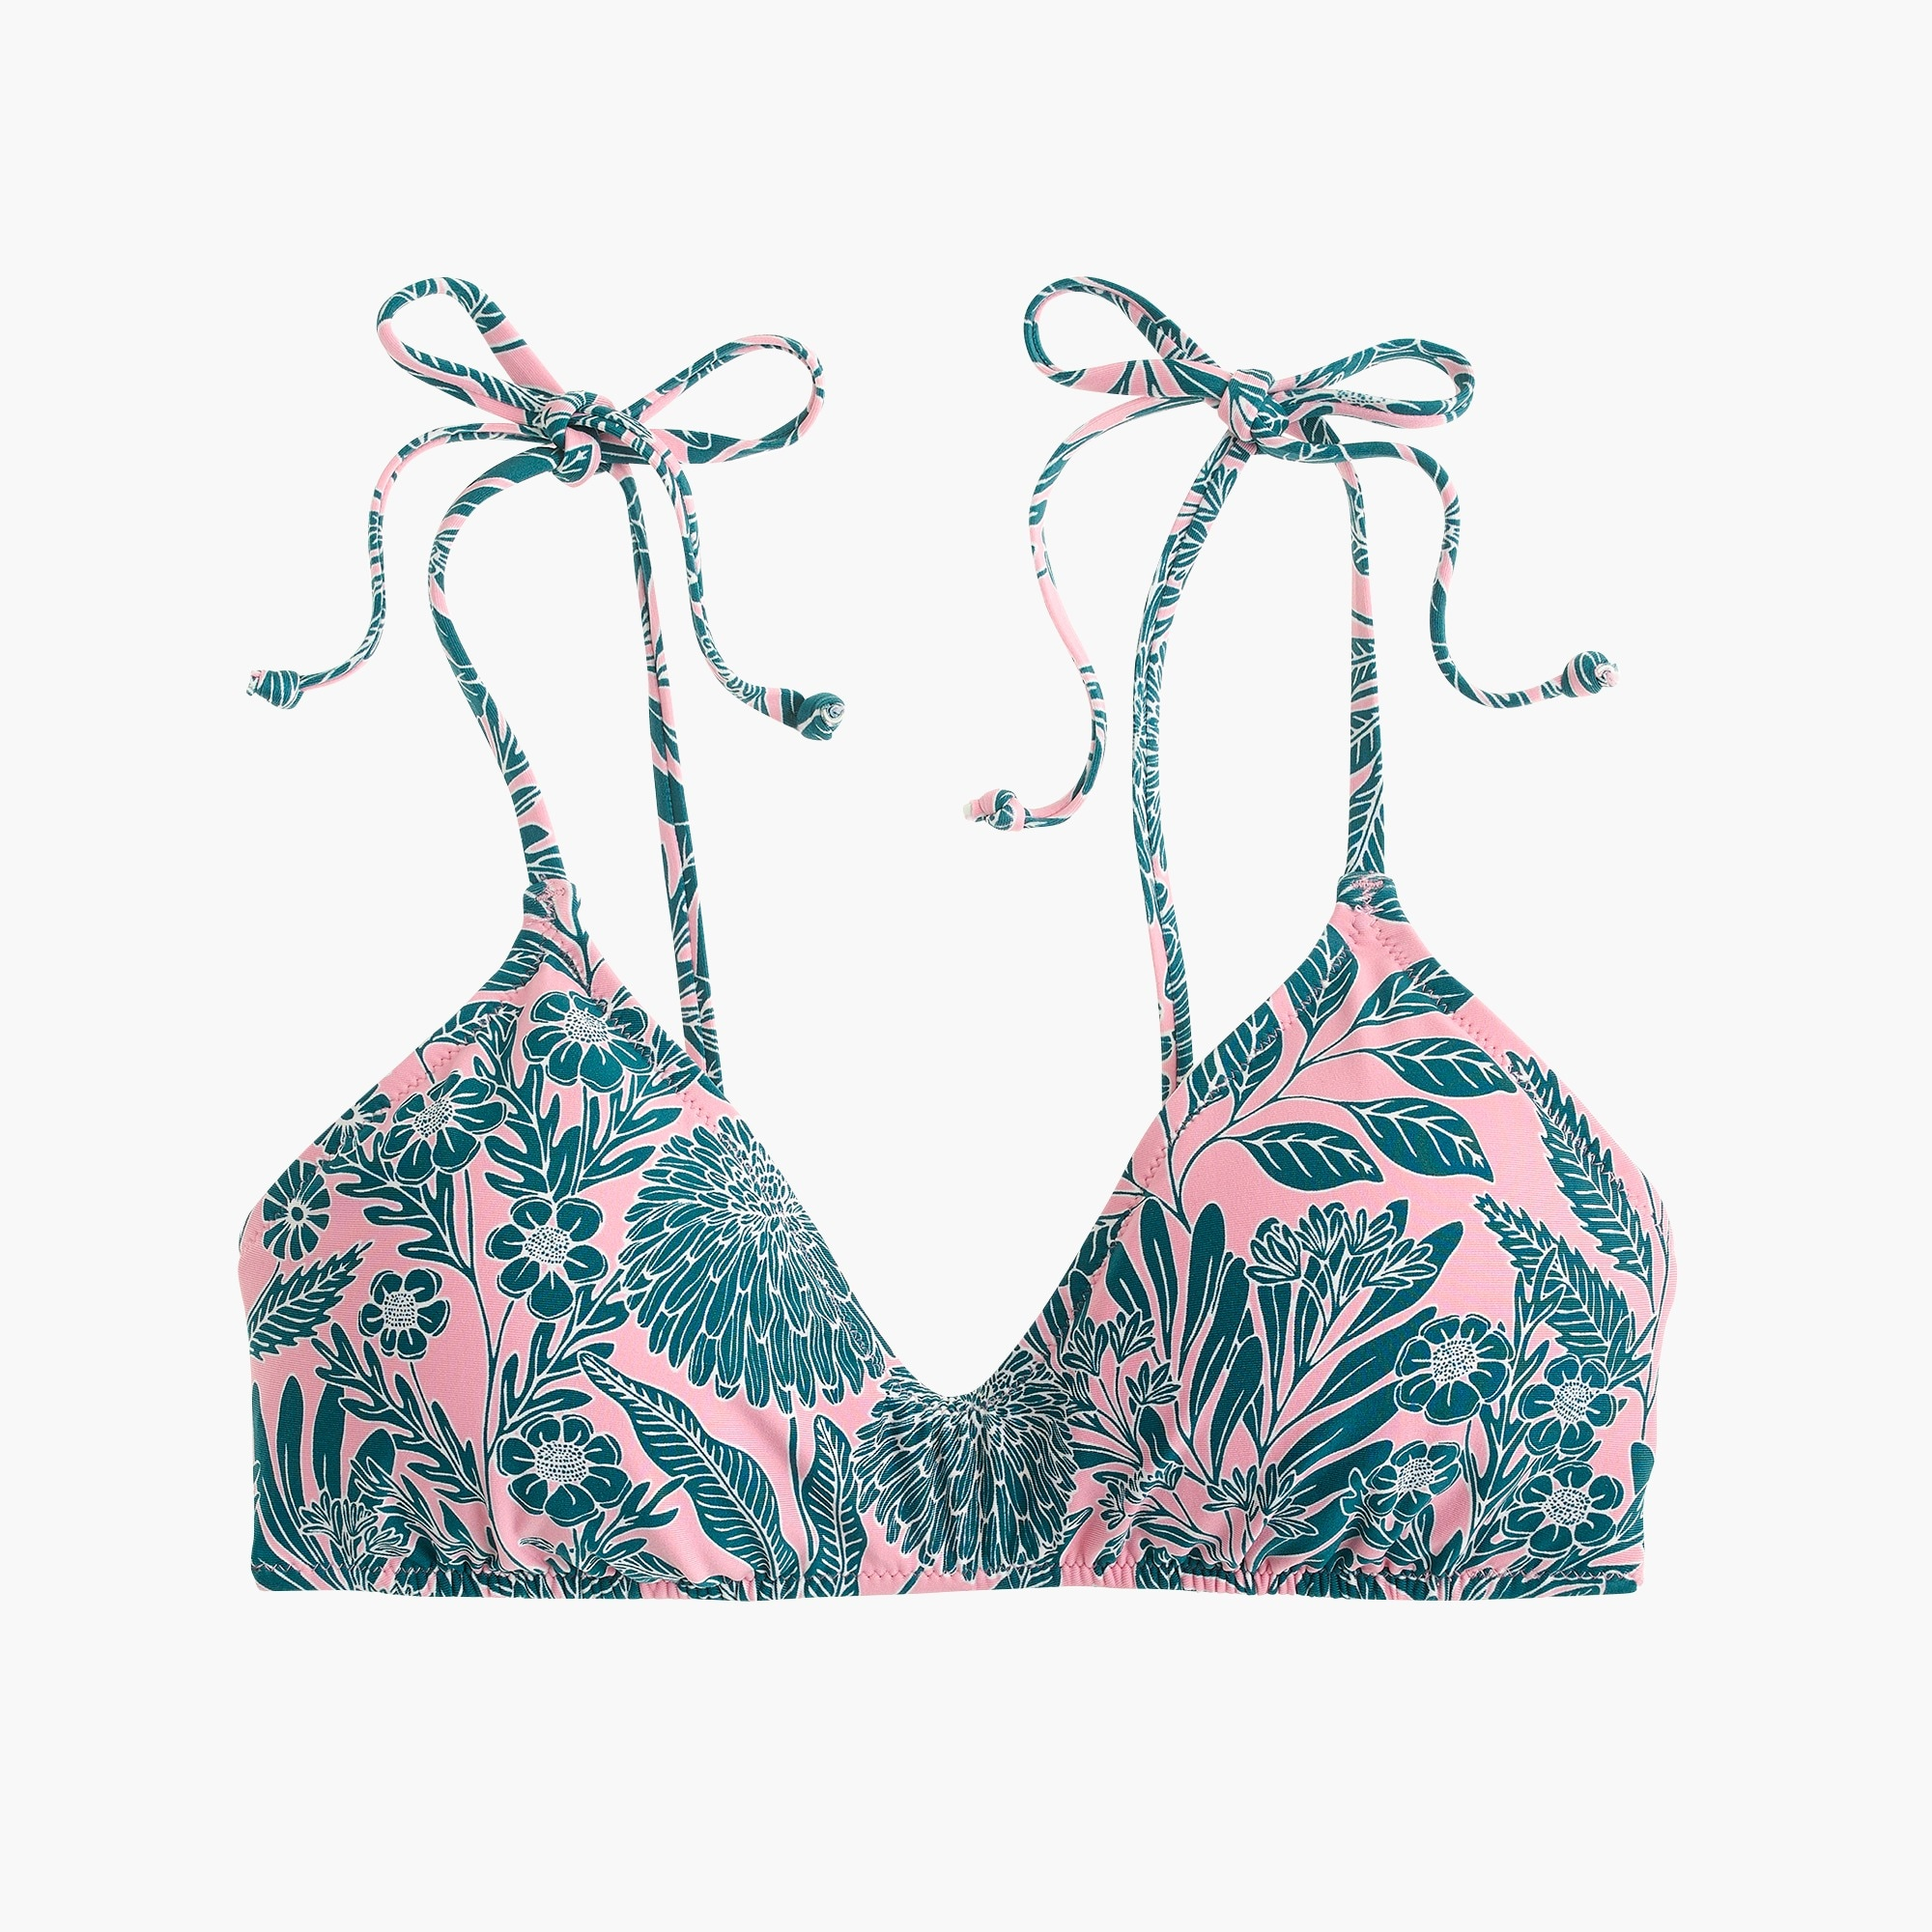 Image 1 for J.Crew X Abigail Borg tie-shoulder french bikini top in prairie dusk floral